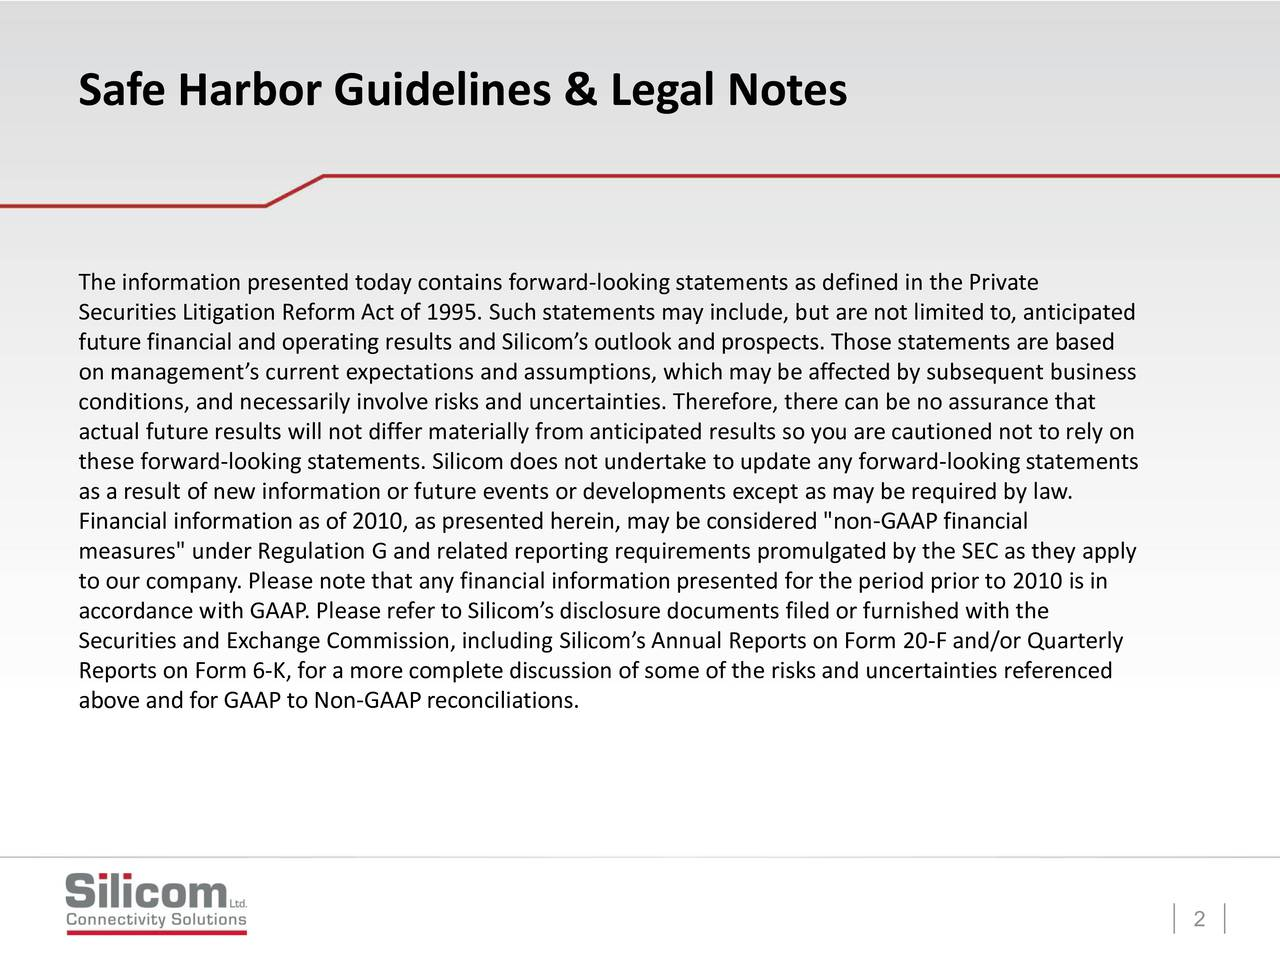 """The information presented today contains forward-looking statements as defined in the Private Securities Litigation Reform Act of 1995. Such statements may include, but are not limited to, anticipated future financial and operating results and Silicoms outlook and prospects. Those statements are based on managements current expectations and assumptions, which may be affected by subsequent business conditions, and necessarily involve risks and uncertainties. Therefore, there can be no assurance that actual future results will not differ materially from anticipated results so you are cautioned not to rely on these forward-looking statements. Silicom does not undertake to update any forward-lookingstatements as a result of new information or future events or developments except as may be required by law. Financial information as of 2010, as presented herein, may be considered """"non-GAAP financial measures"""" under Regulation G and related reporting requirements promulgated by the SEC as they apply to our company. Please note that any financial information presented for the period prior to 2010 is in accordance with GAAP. Please refer to Silicoms disclosure documents filed or furnished with the Securities and Exchange Commission, including Silicoms Annual Reports on Form 20-F and/or Quarterly Reports on Form 6-K, for a more complete discussion of some of the risks and uncertainties referenced above and for GAAP to Non-GAAP reconciliations. 2"""